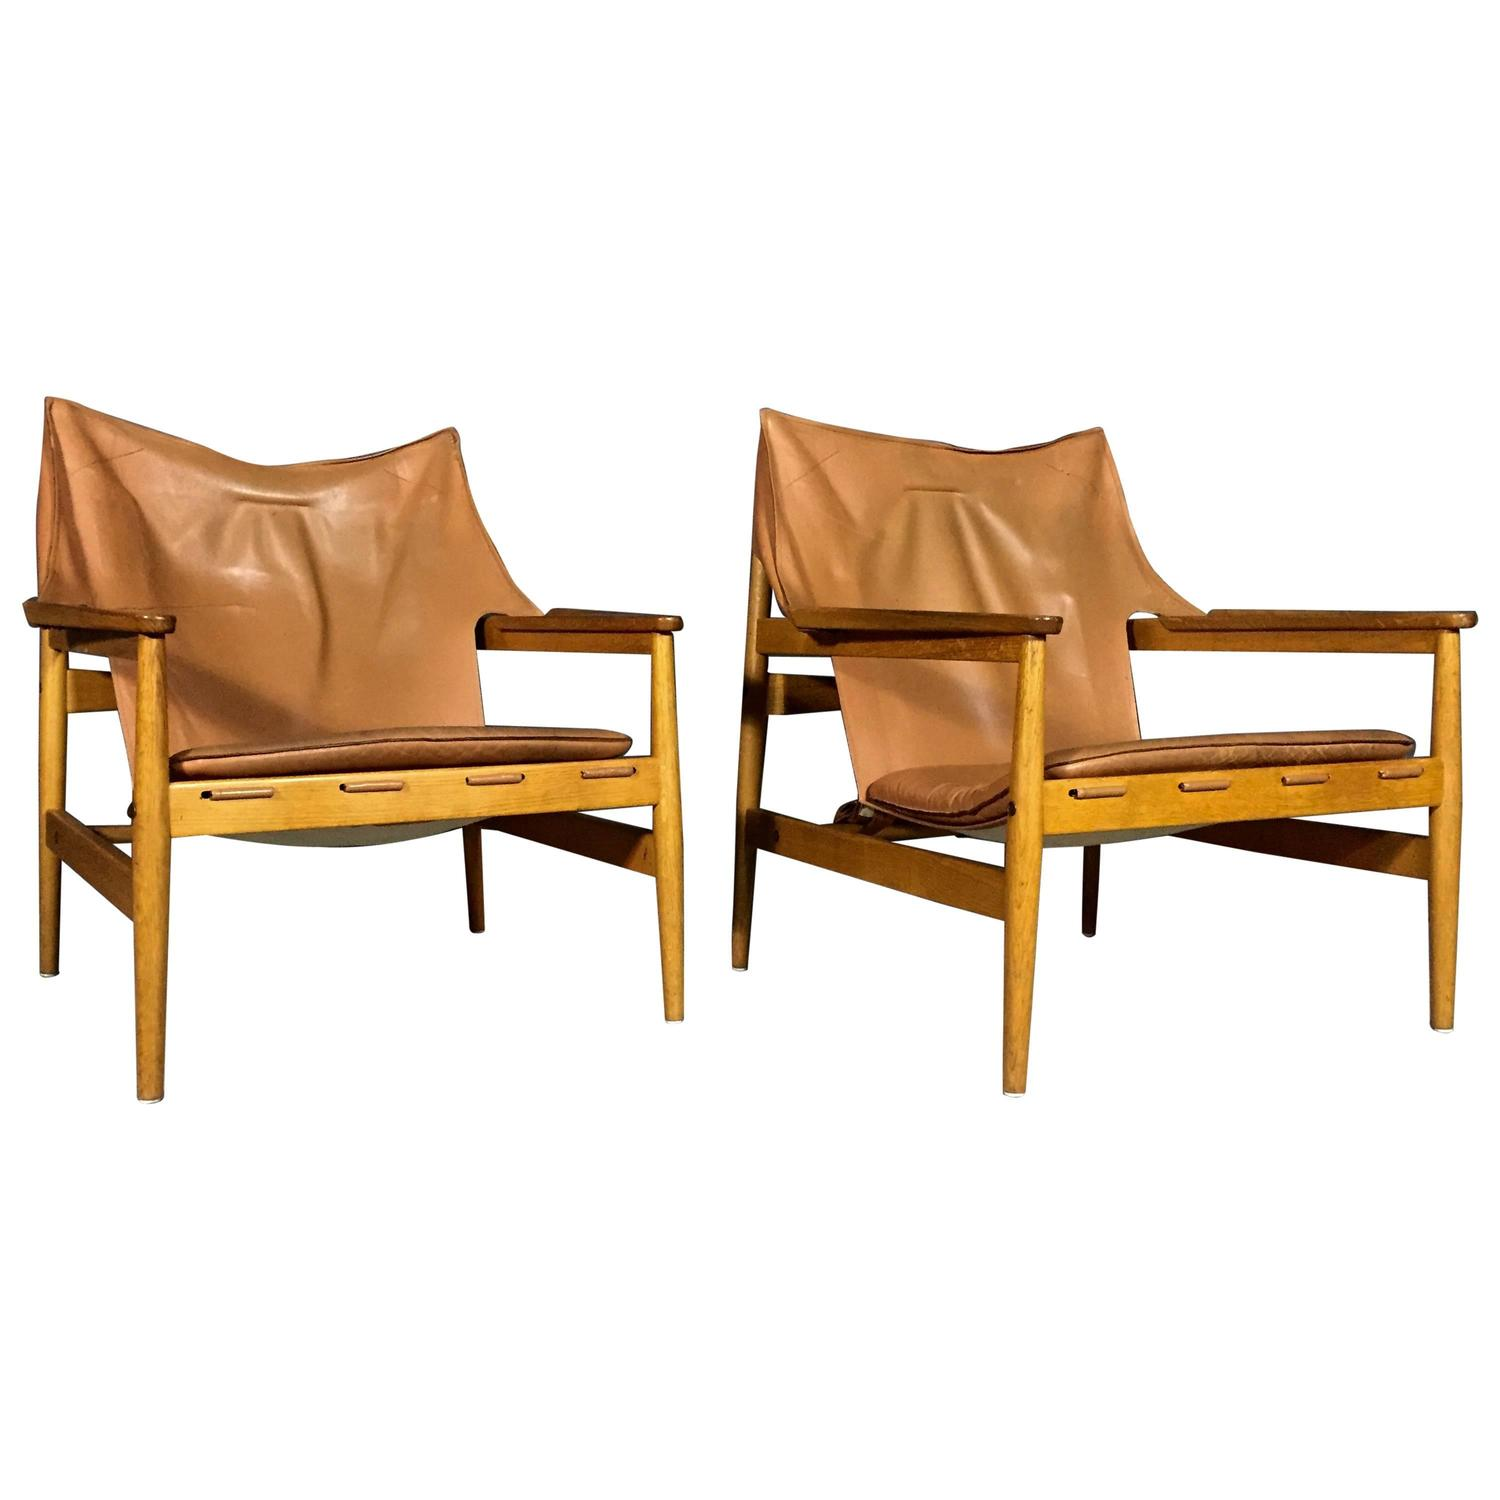 Pair Of Hans Olsen Leather Sling Chairs For Viska Mobler